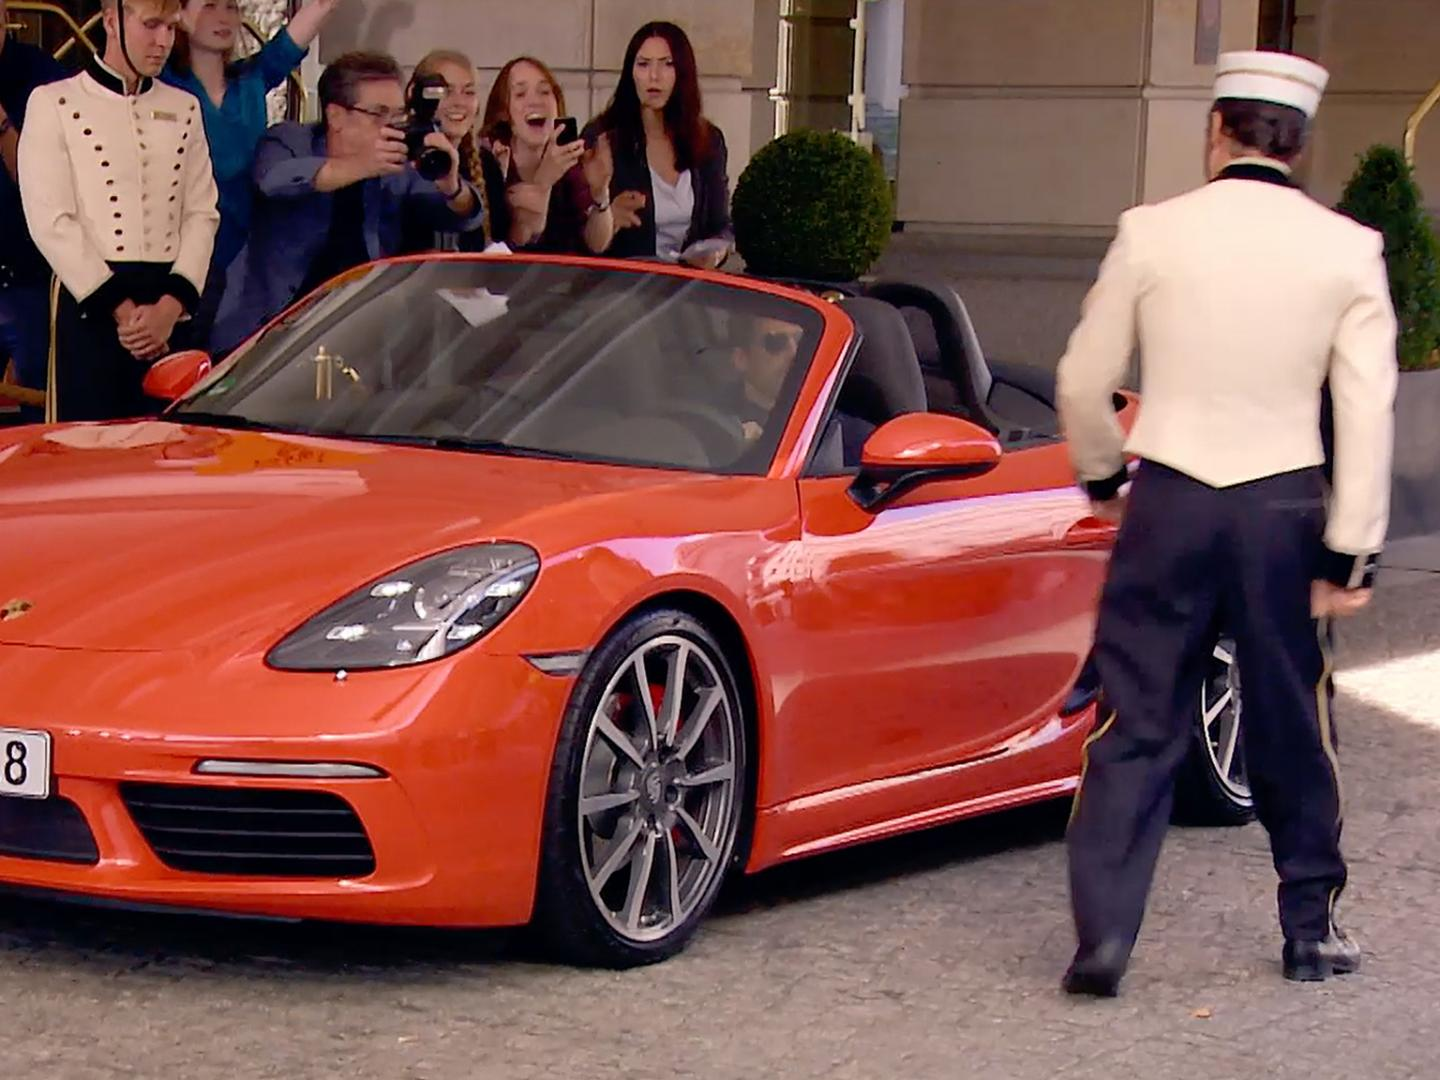 Patrick Dempsey's way of arriving at a hotel driveway Thumbnail